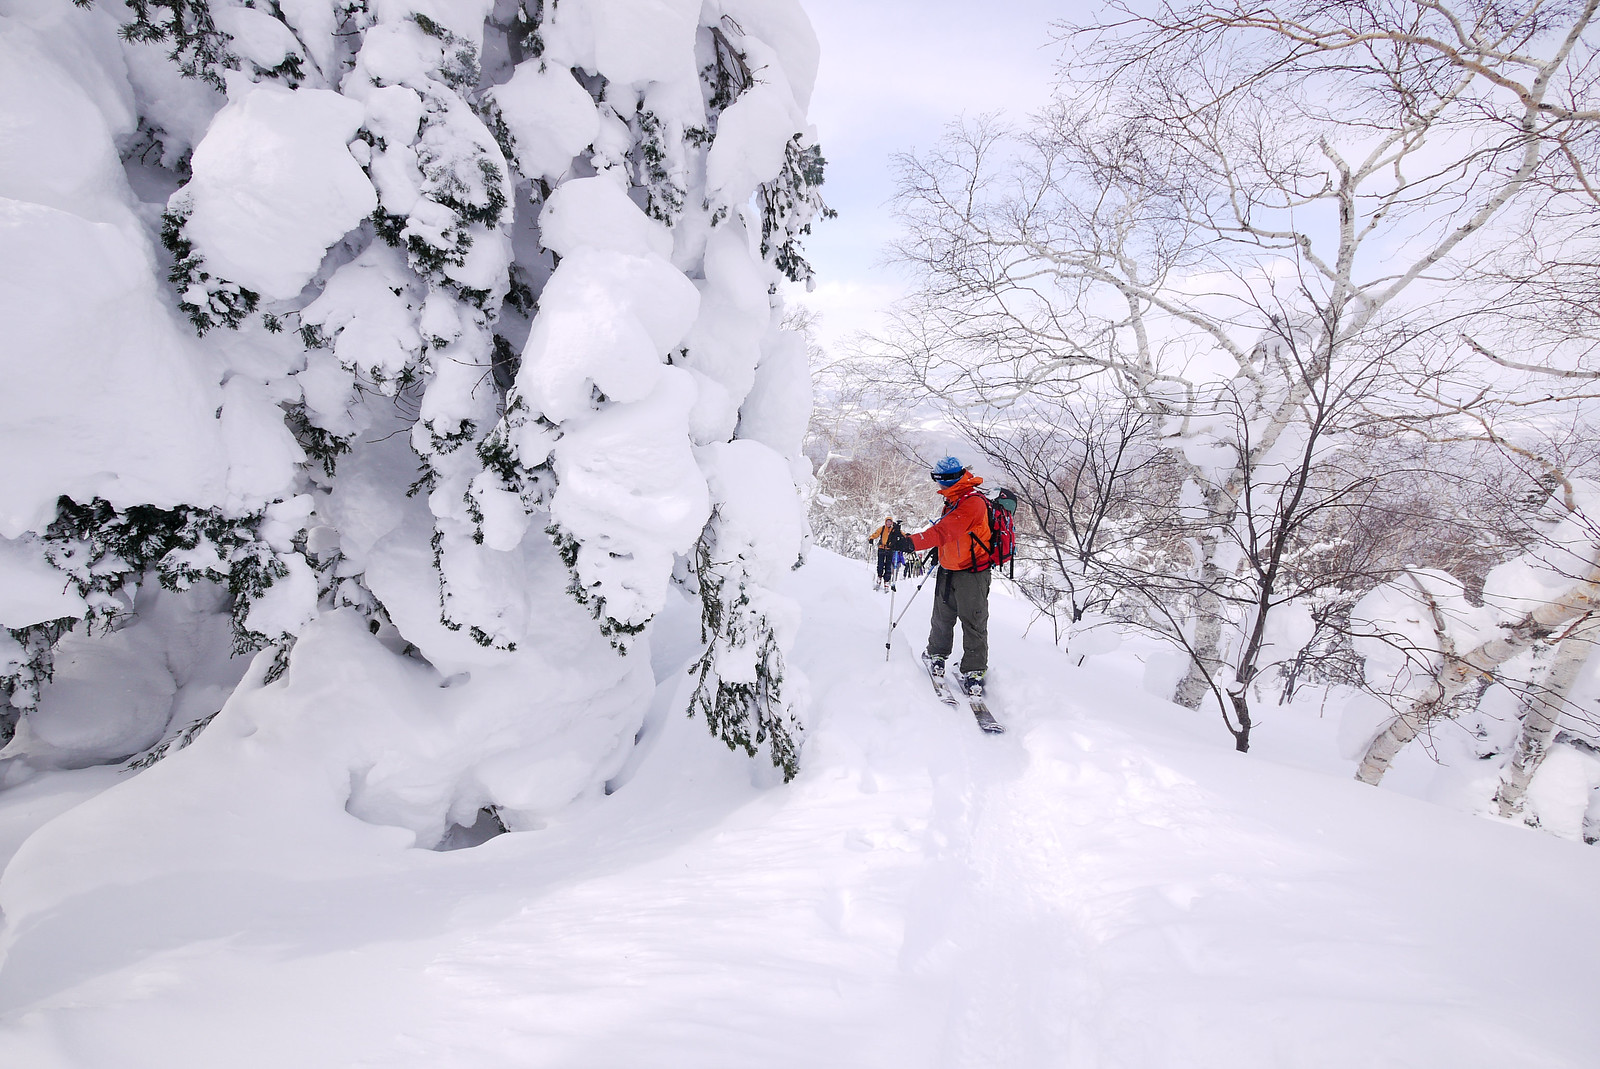 Mt. Furano backcountry ski touring (Hokkaido, Japan)